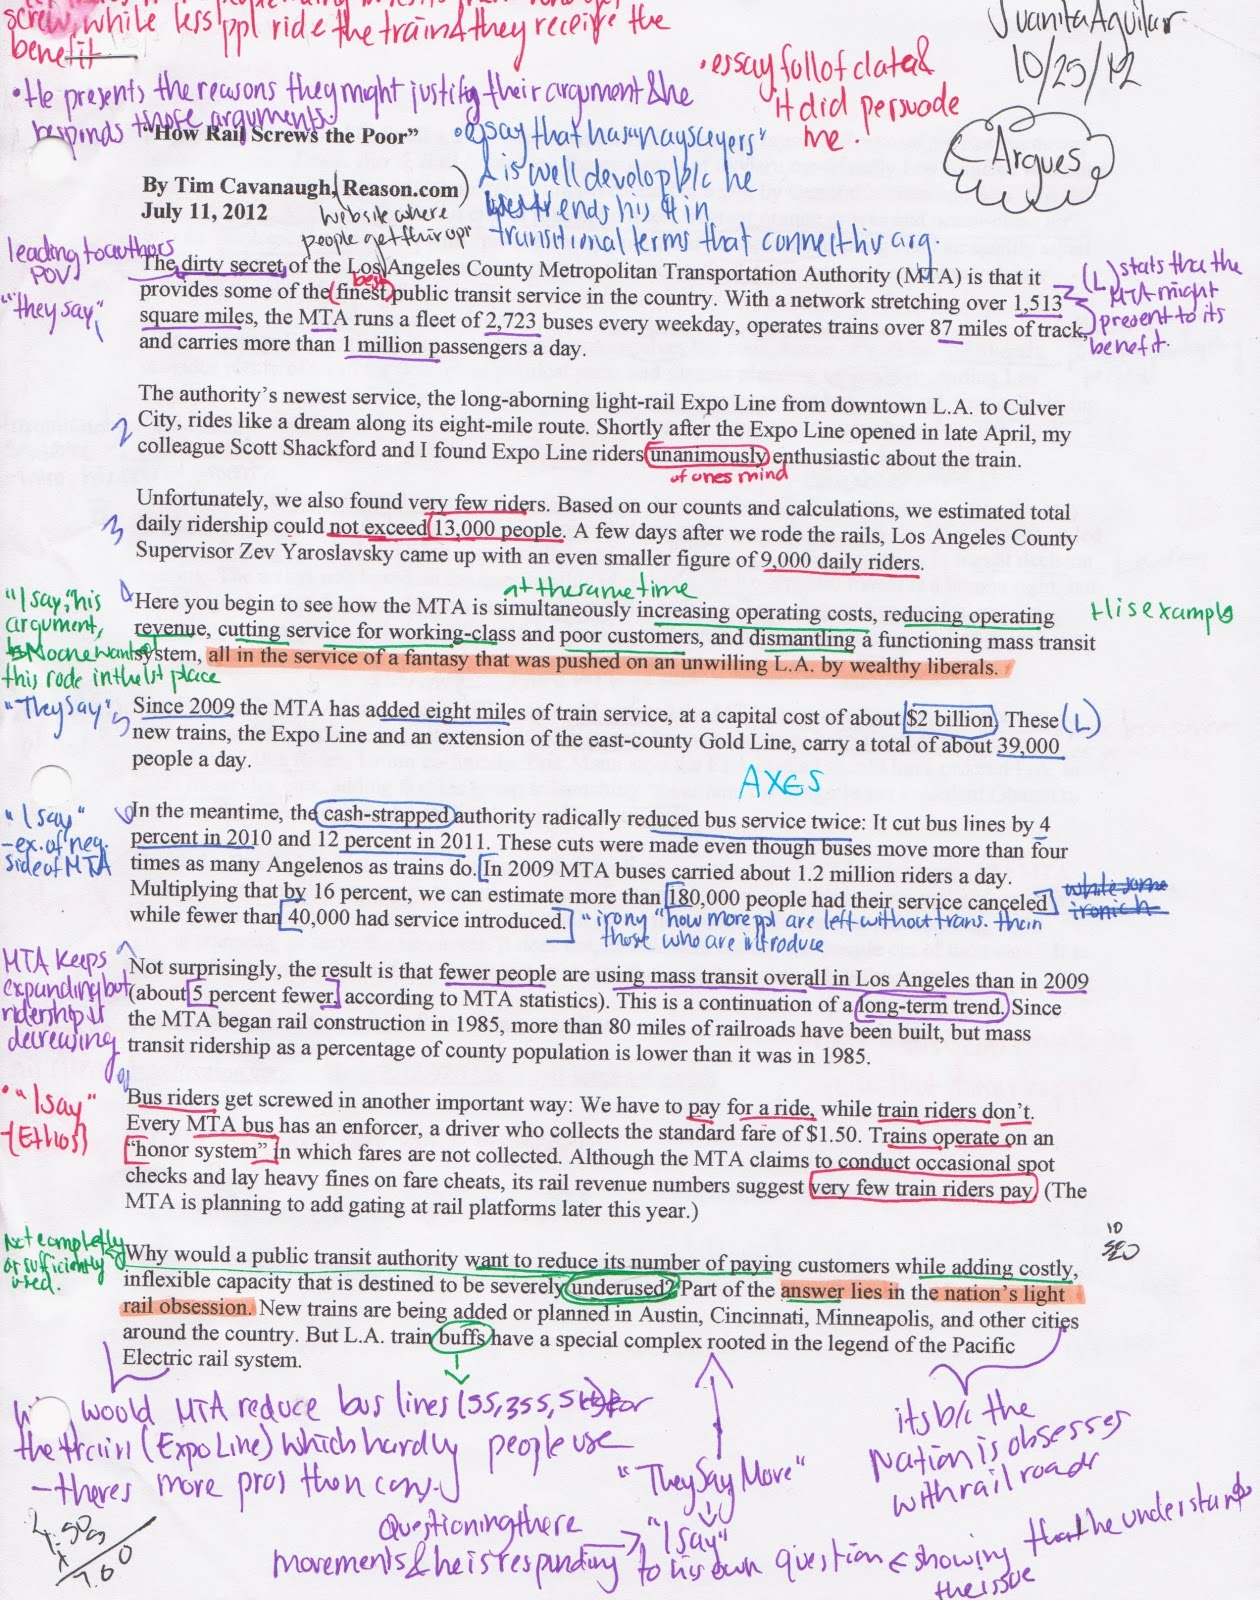 017 Annotation2 Essay Example How Tonotate Wondrous To Annotate An A Movie In Critical Full